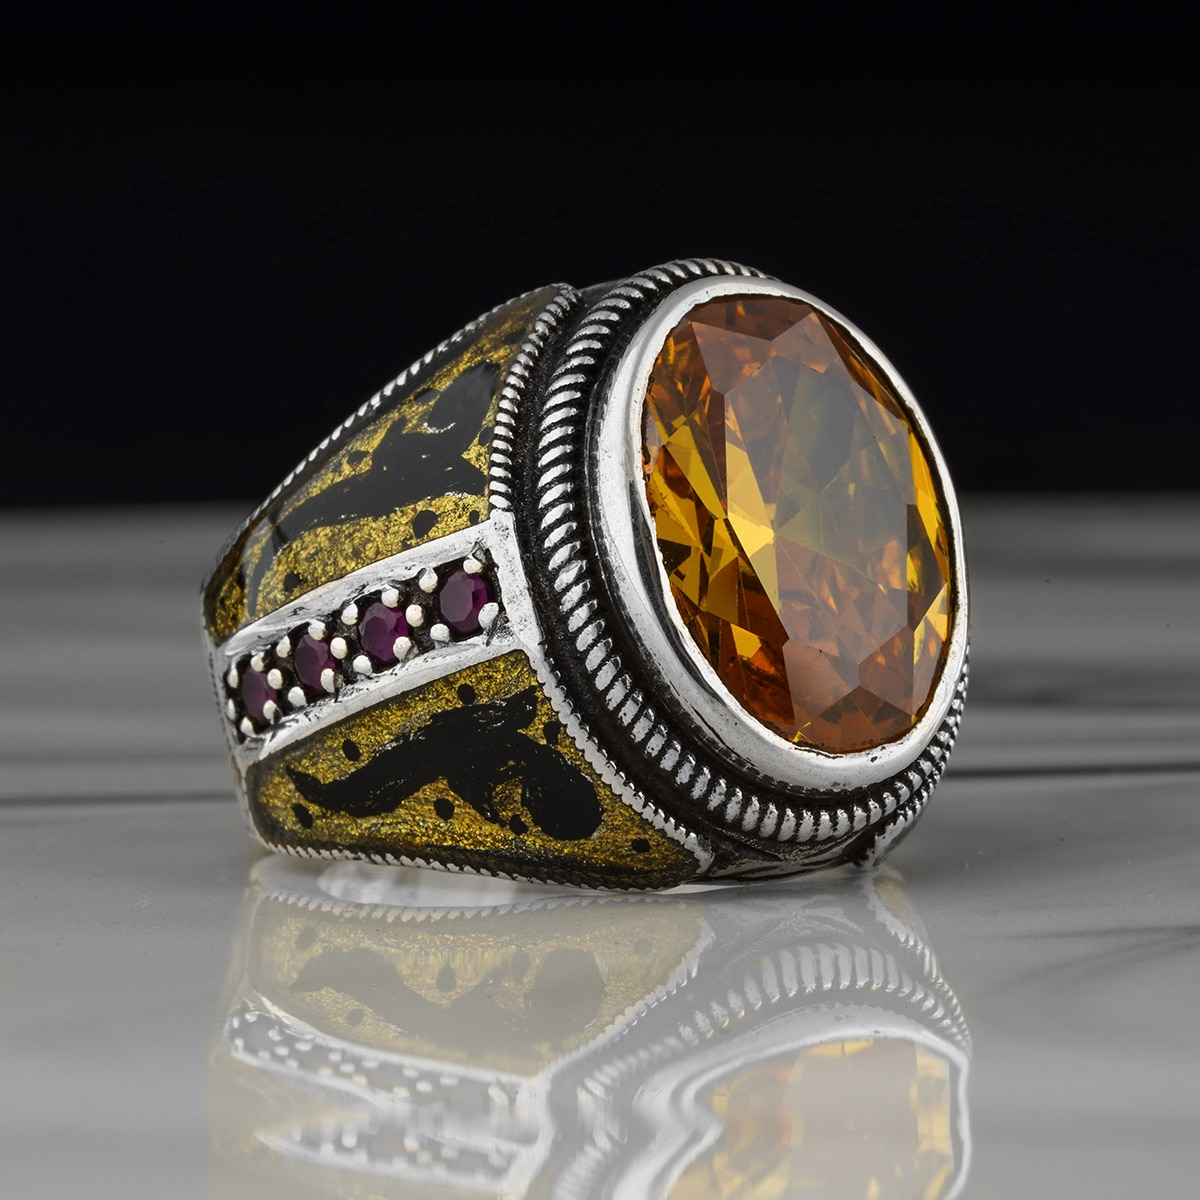 Ring for Men Jewelry  Citrine Stone Jewelry Fashion Vintage 925 sterling silver rings All Sizes Are Available, Super Deals